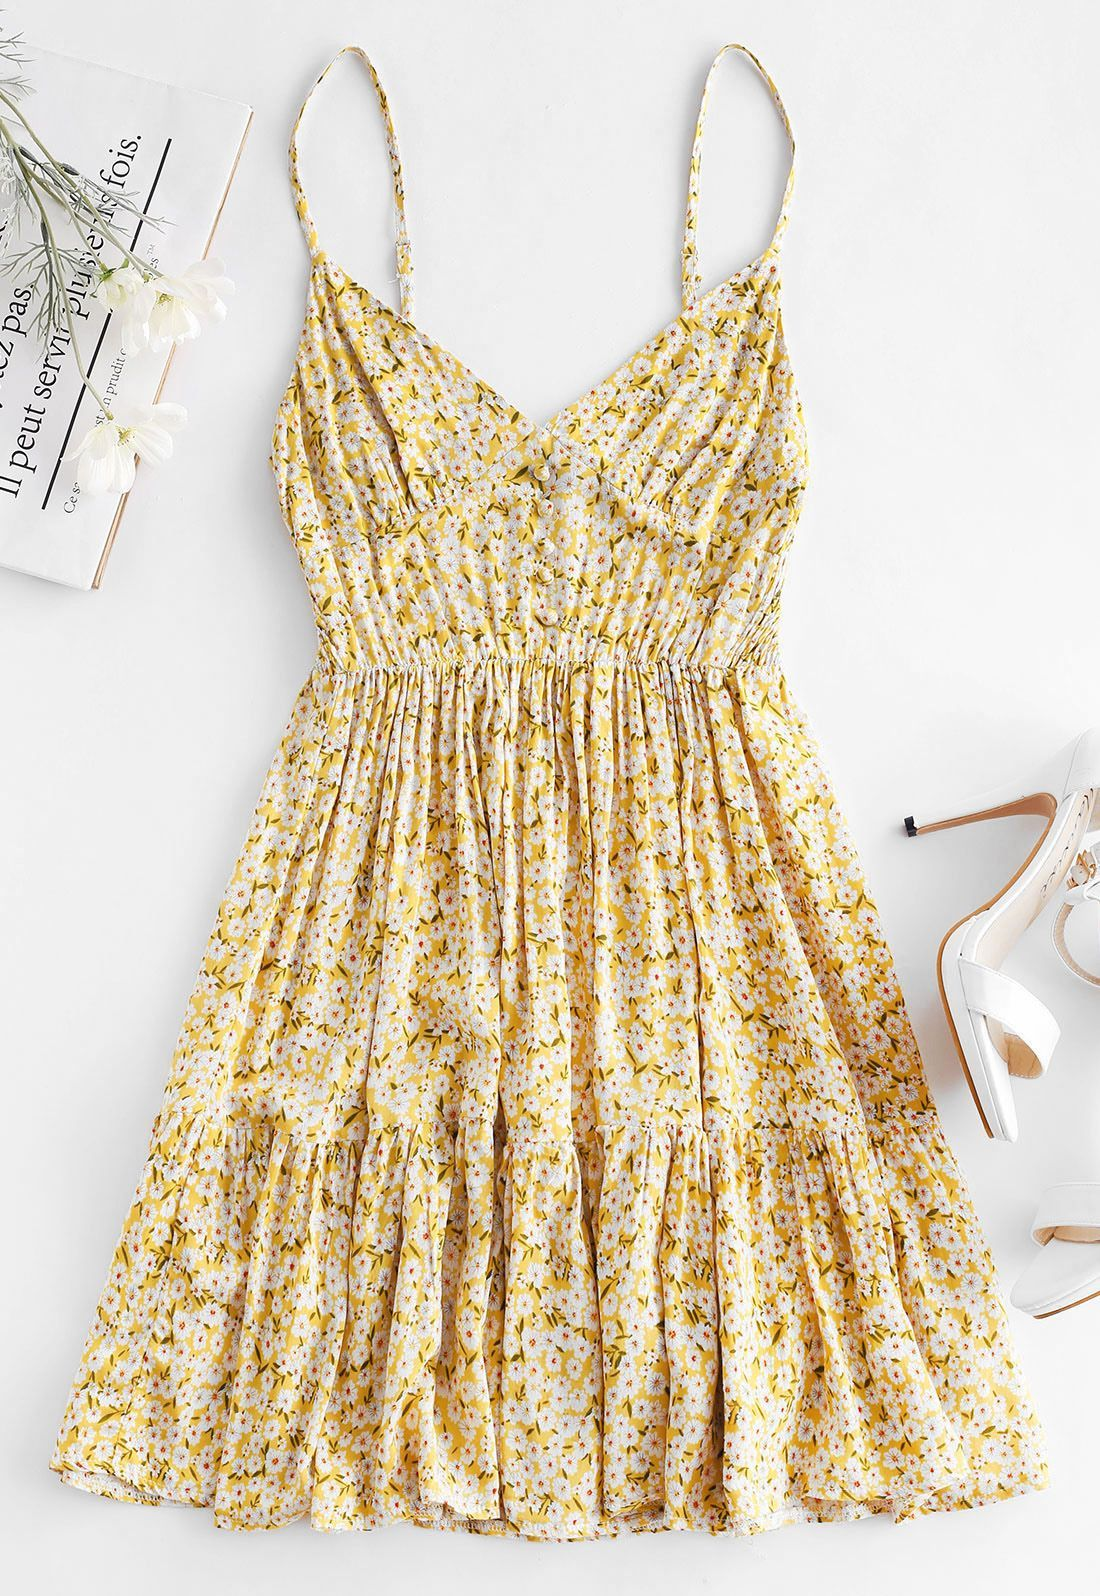 Up to 75% off!! Lemon Yellow Cute Floral Summer Dress